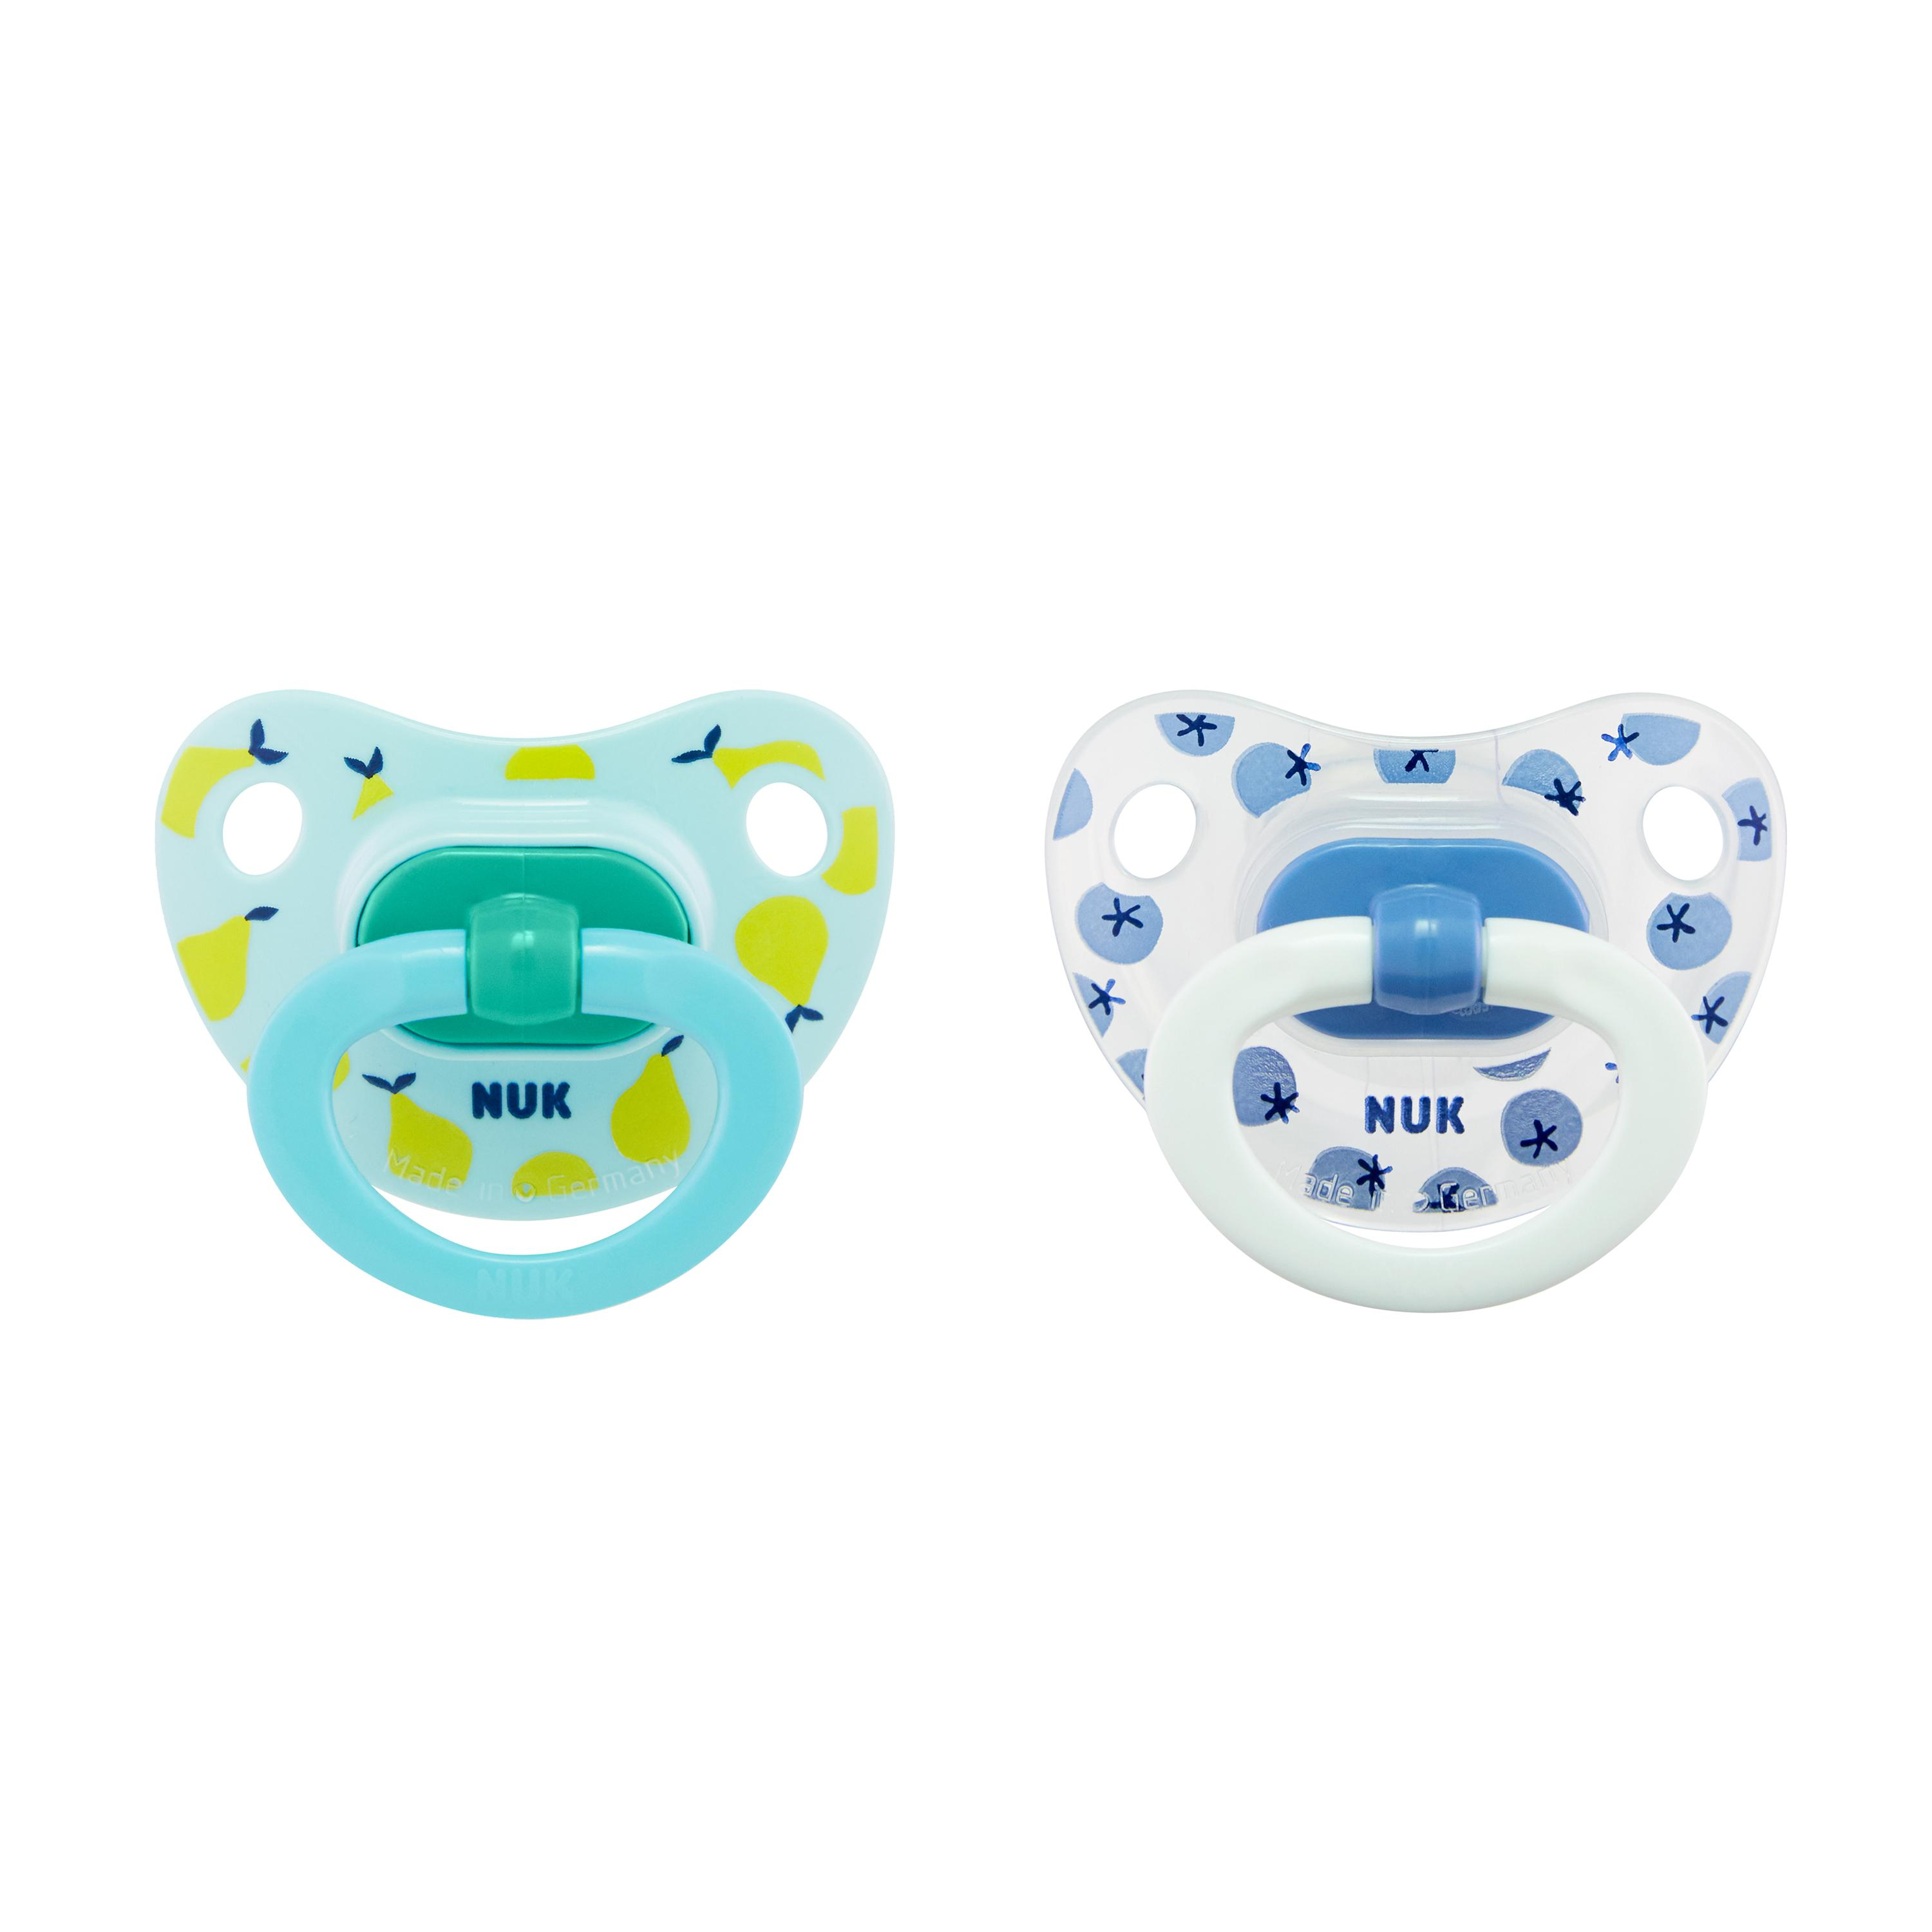 NUK® Orthodontic Pacifiers, 18-36 Months, 2-Pack Product Image 5 of 7